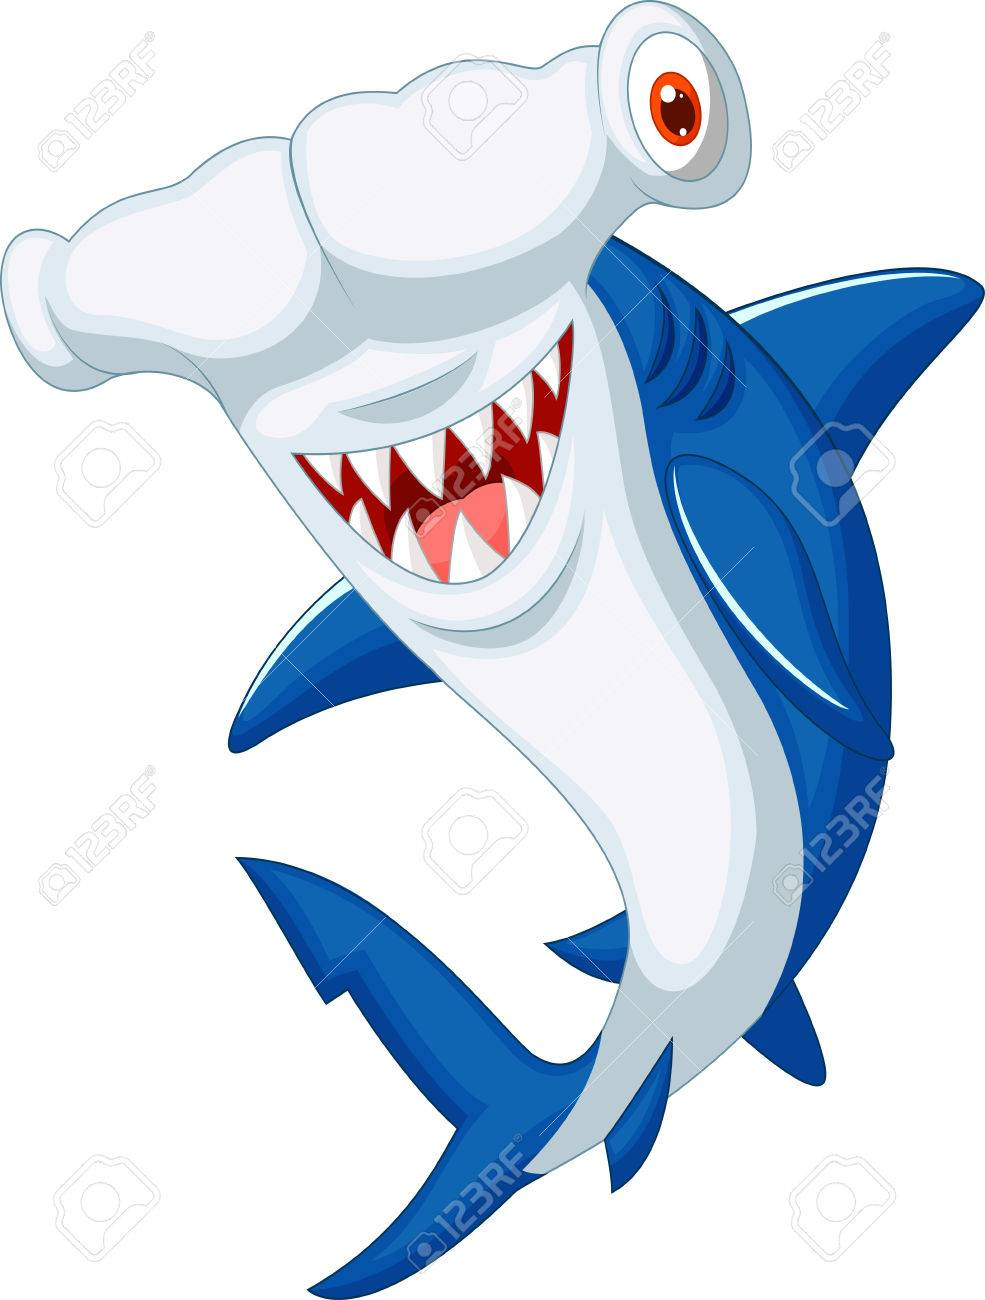 cute hammerhead shark cartoon royalty free cliparts vectors and rh 123rf com hammerhead shark clipart free hammerhead shark clipart images